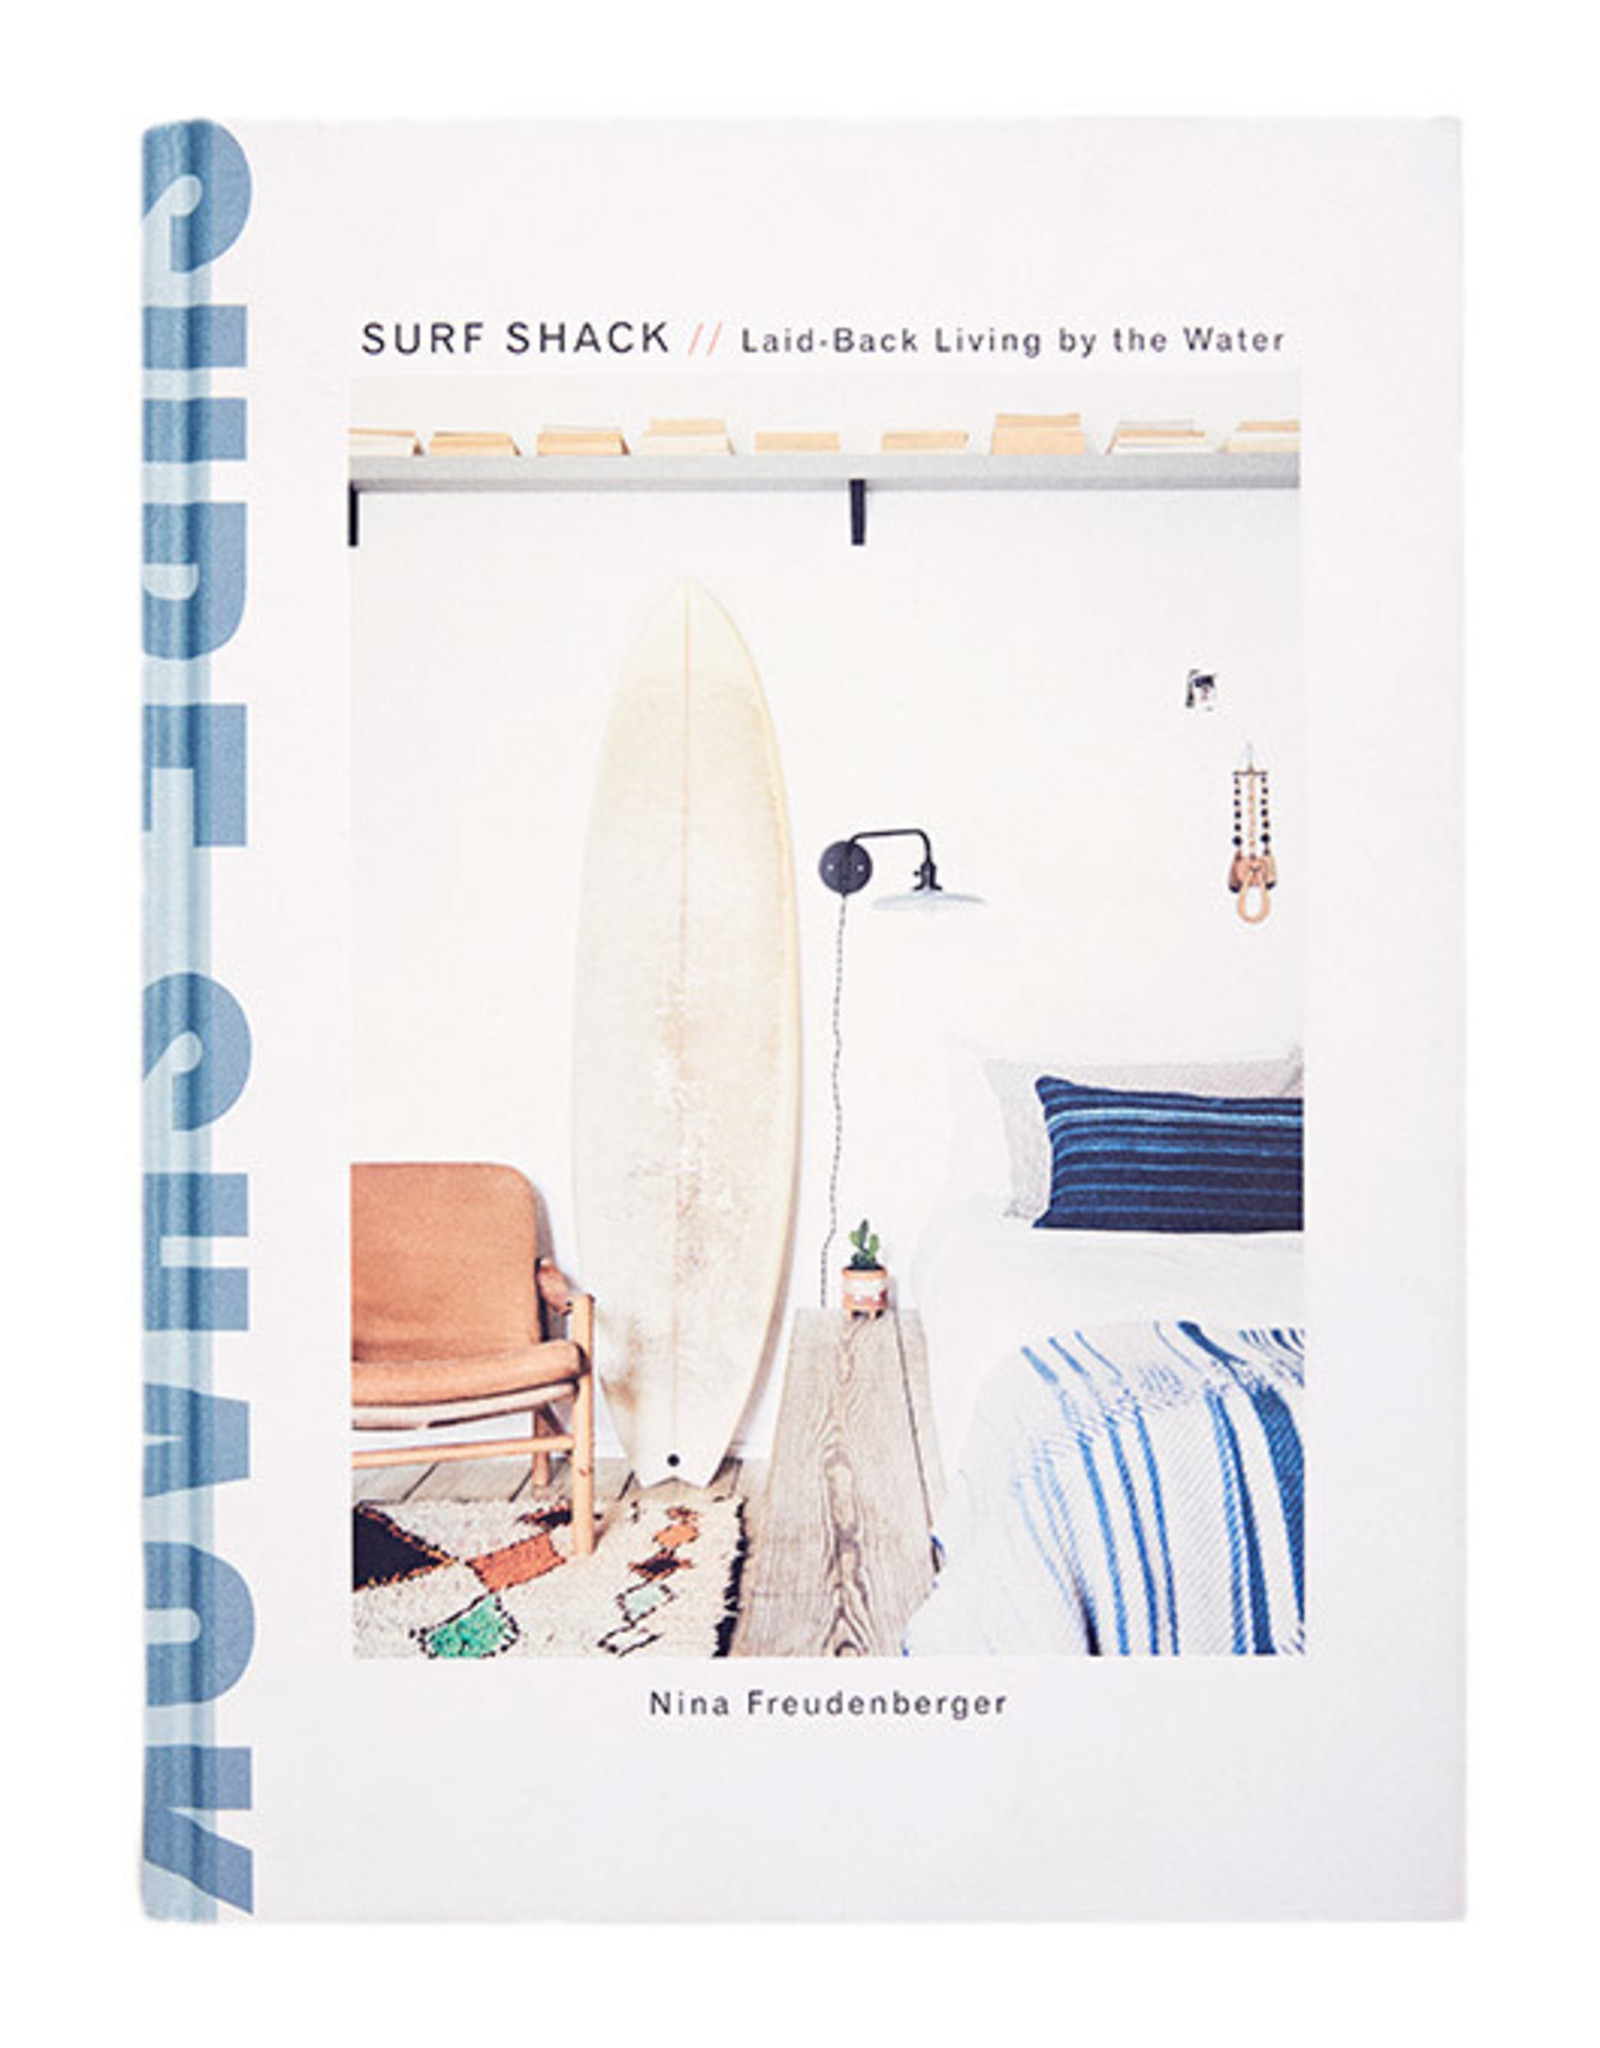 Surf Shack - Laid-Back Living by the Water